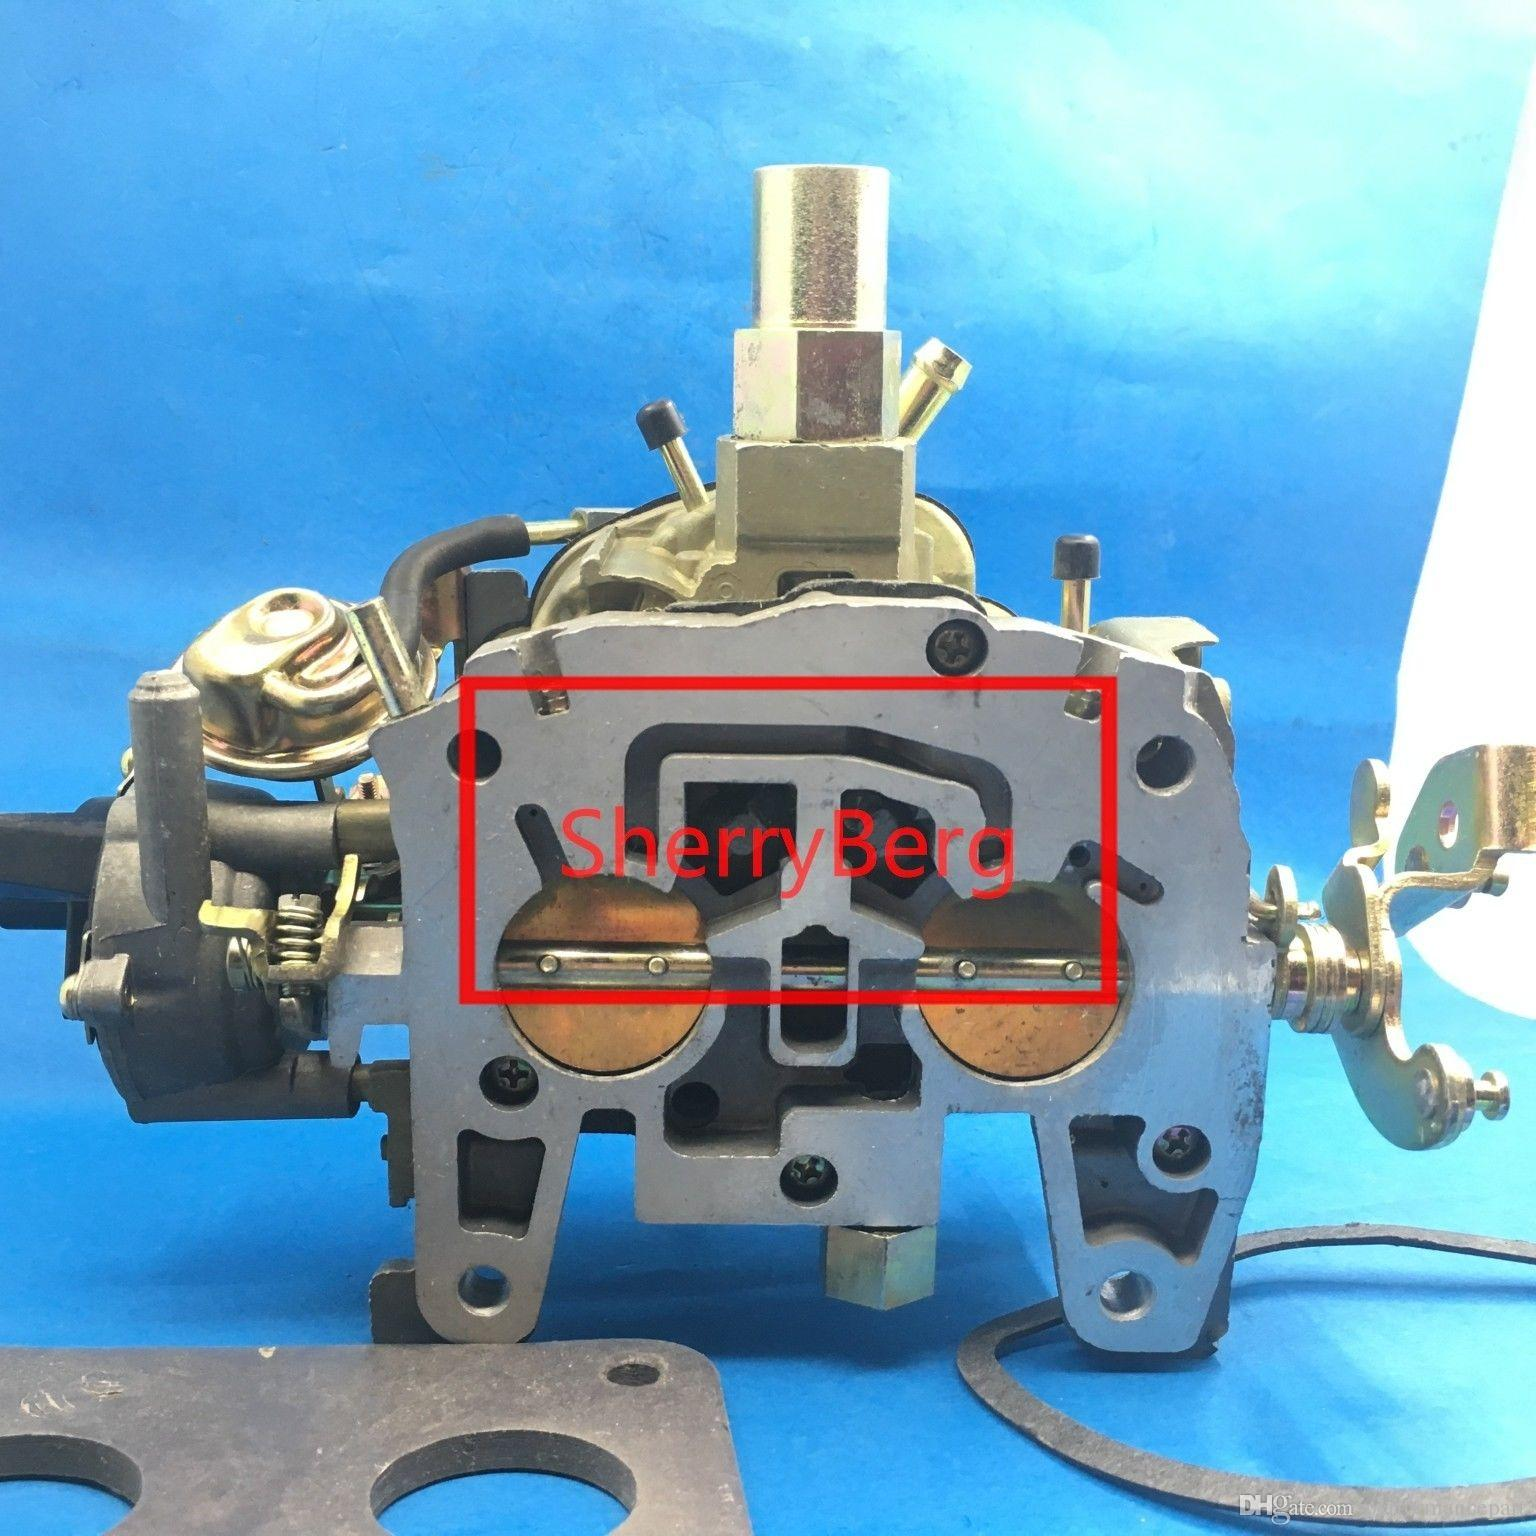 Carb Fit Chevy Buick Rochester Dualjet 2bbl Carburetor 305 350ci V8. Carb Fit Chevy Buick Rochester Dualjet 2bbl Carburetor 305 350ci V8 19771979 Online With 17486piece On Performancepart's Store Dhgate. Chevrolet. Carb 305 Chevy Engine Wiring Diagram At Scoala.co